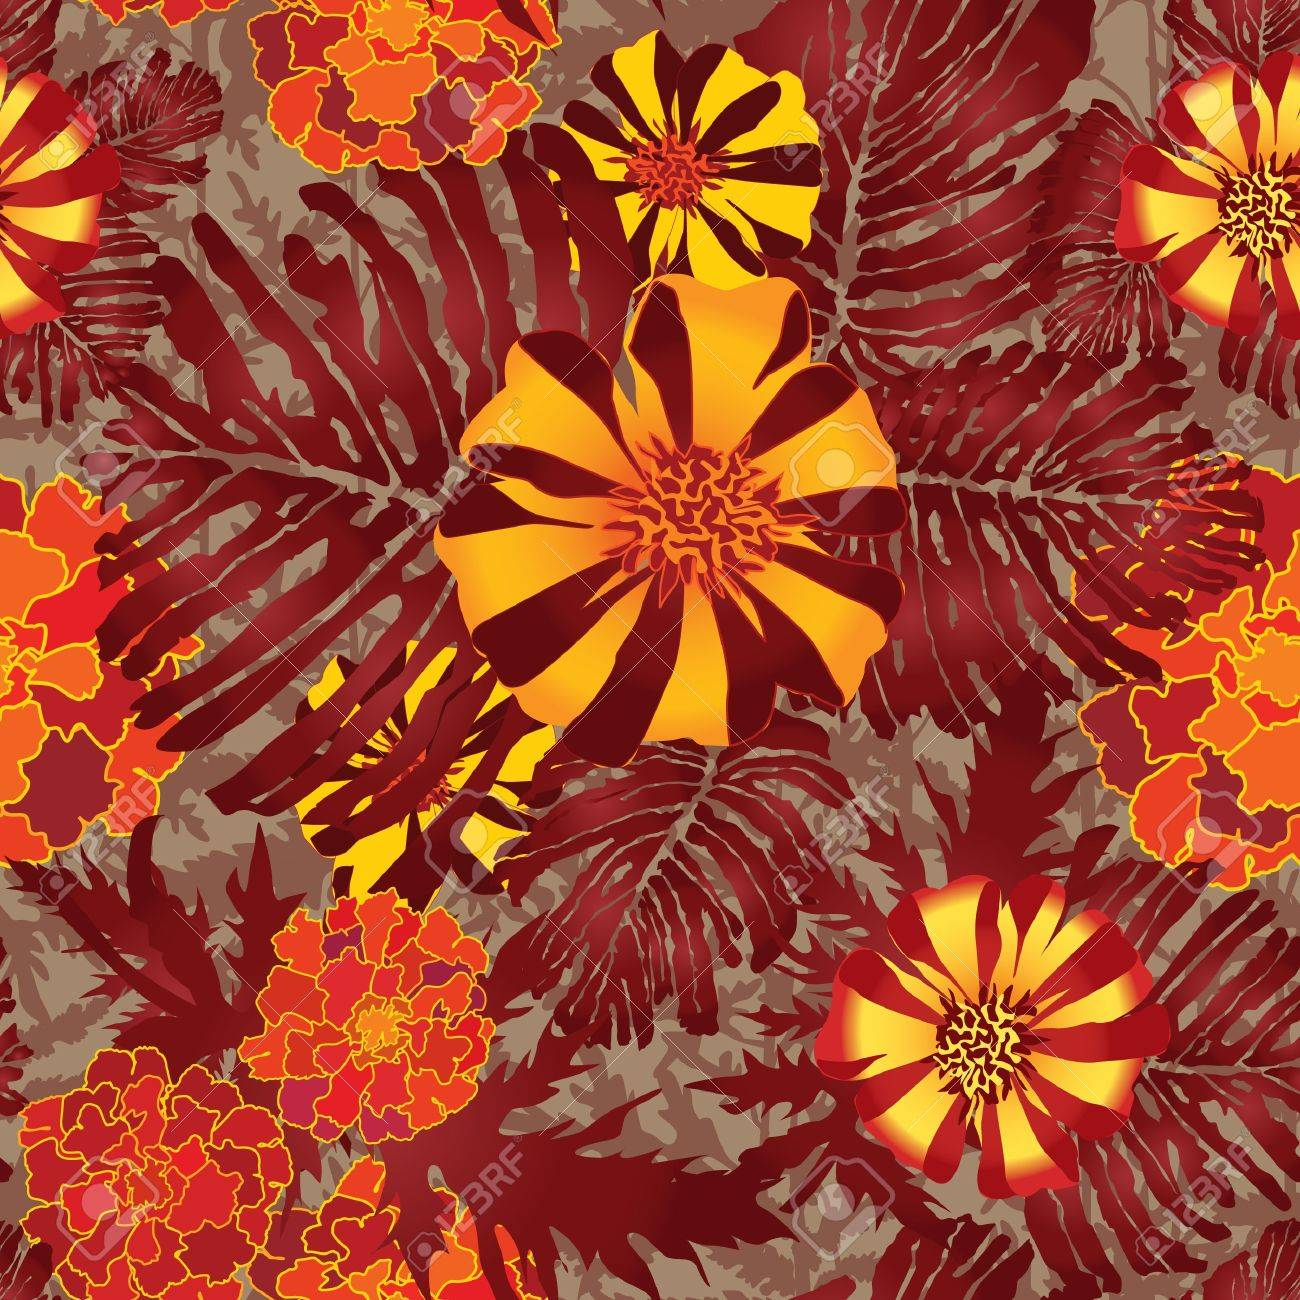 abstract floral seamless background  gentle velvet-ribbon pattern  Floral seamless background with red, yellow and purple flowers  Ornate flower texture Stock Vector - 17715786